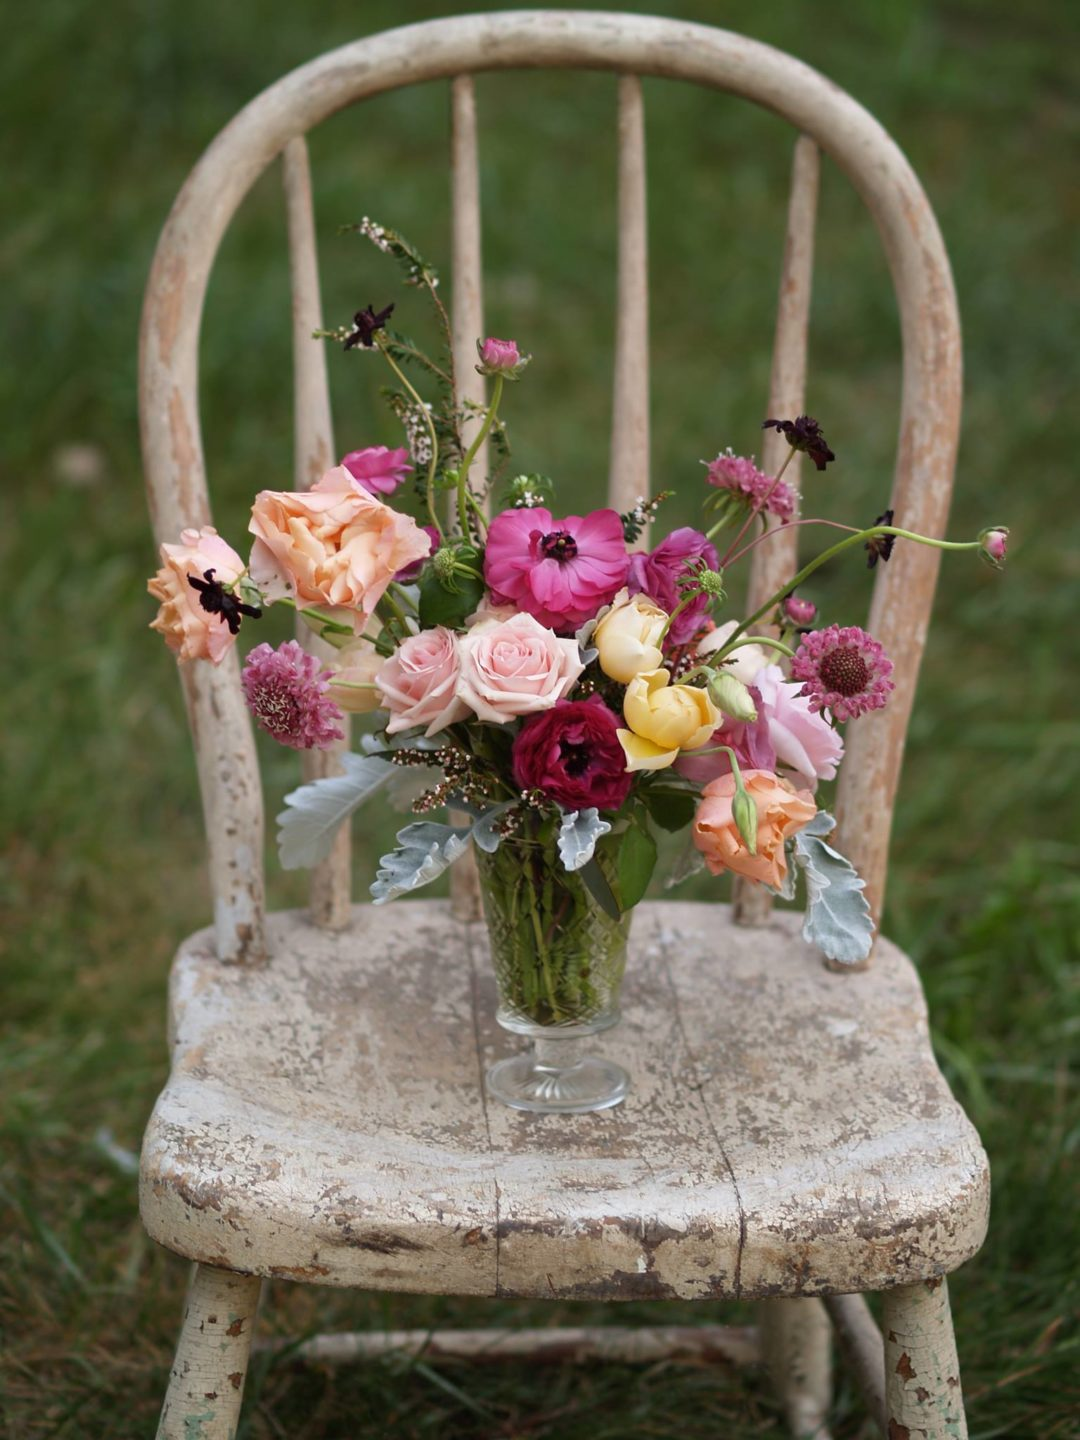 wild whimsical centerpiece in bright colors on old chipped paint chair